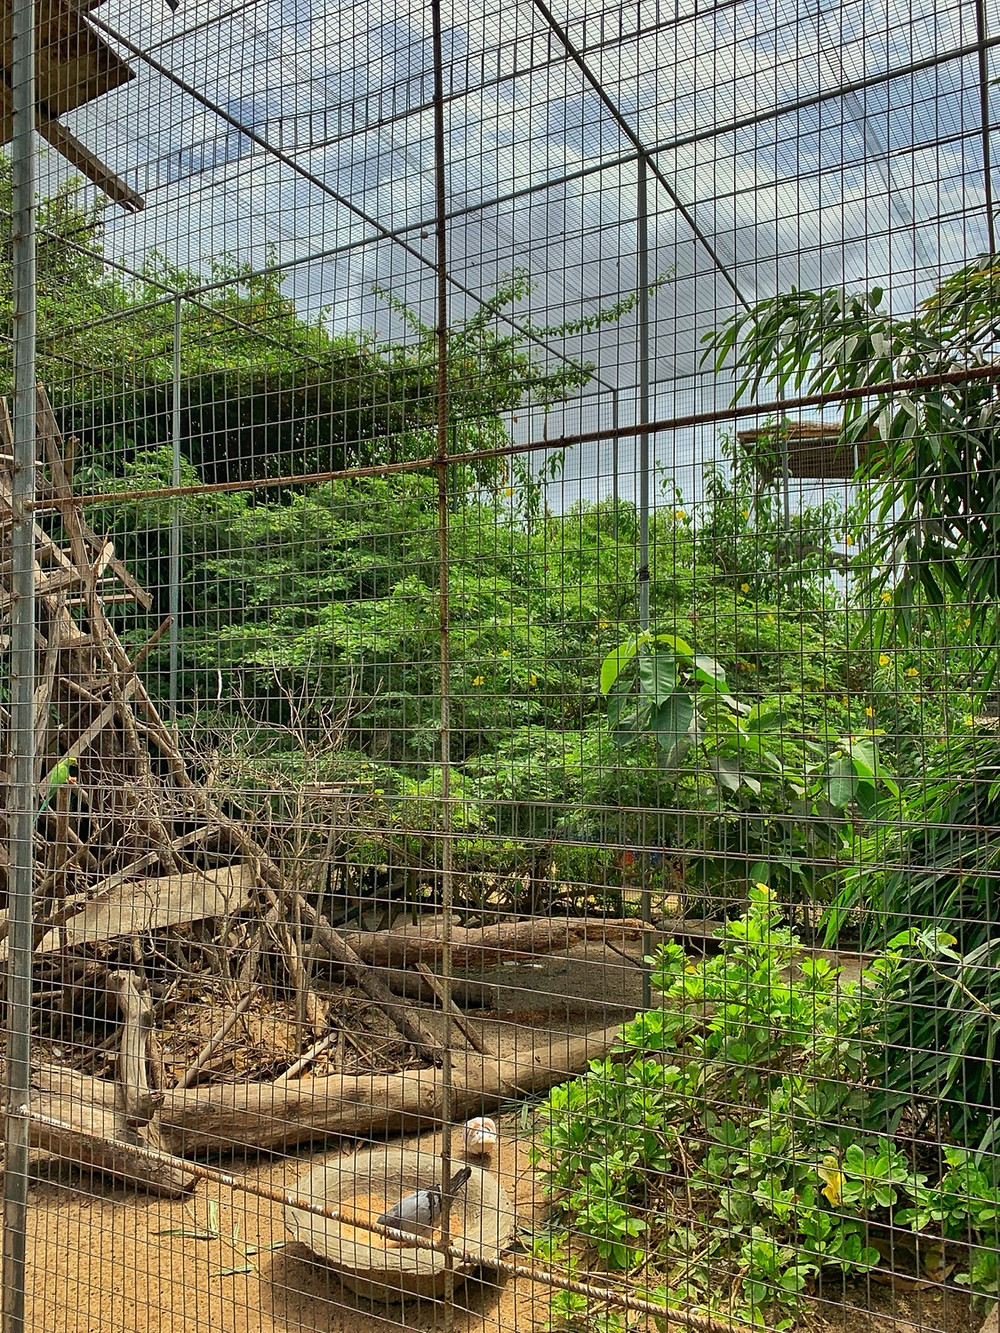 Aviary at greenfingers conservation